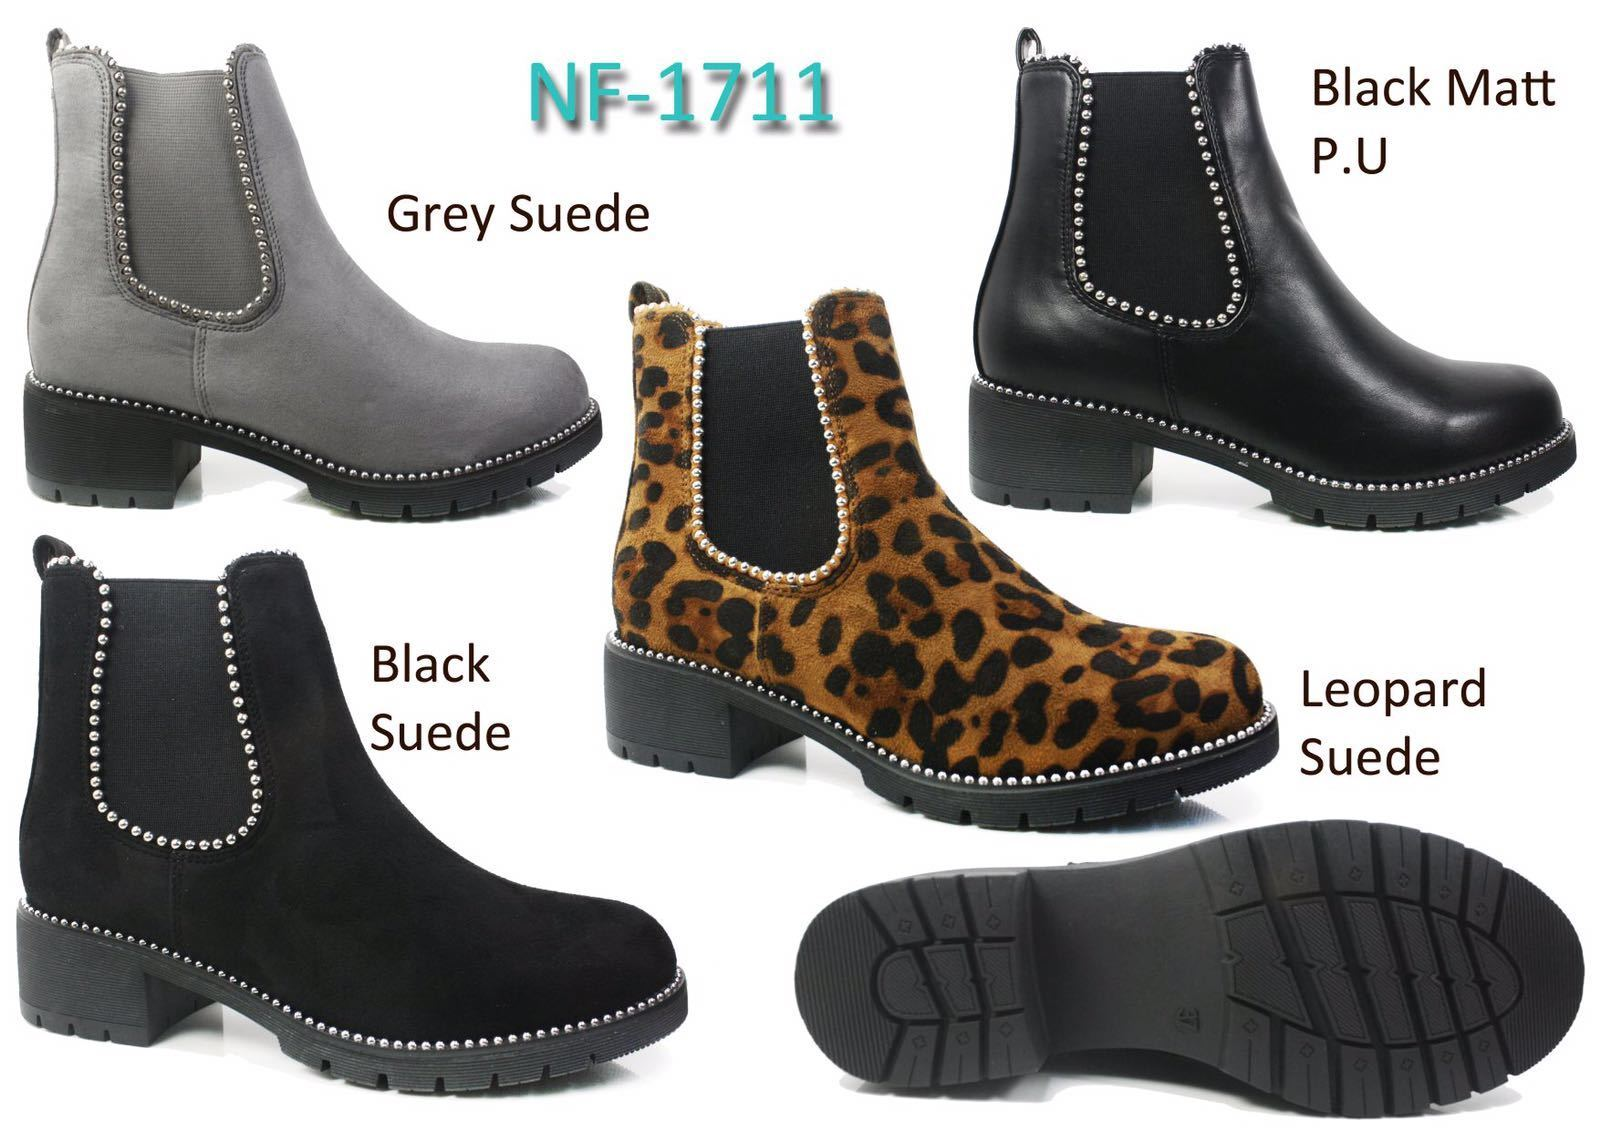 Ladies Chunky Block Heel Woman's Shoes Studded Platform Chelsea Ankle Boots Size